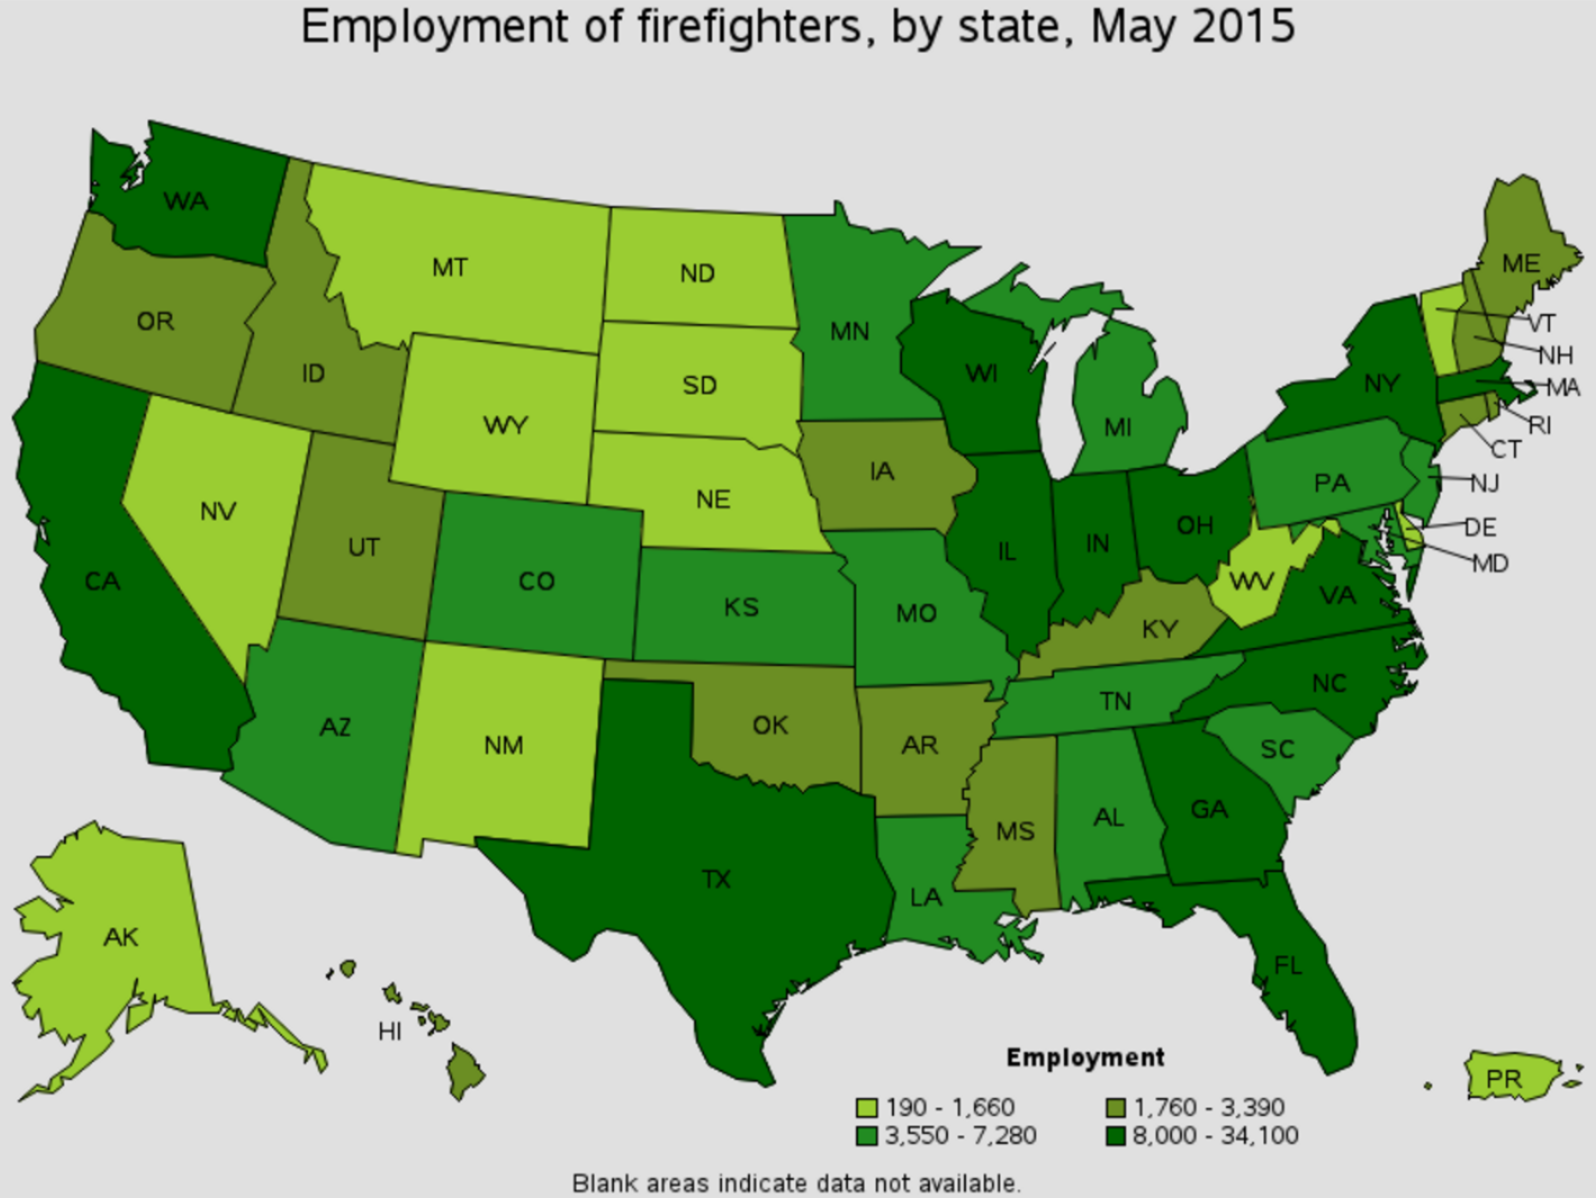 firefighter job outlook by state Corona New York